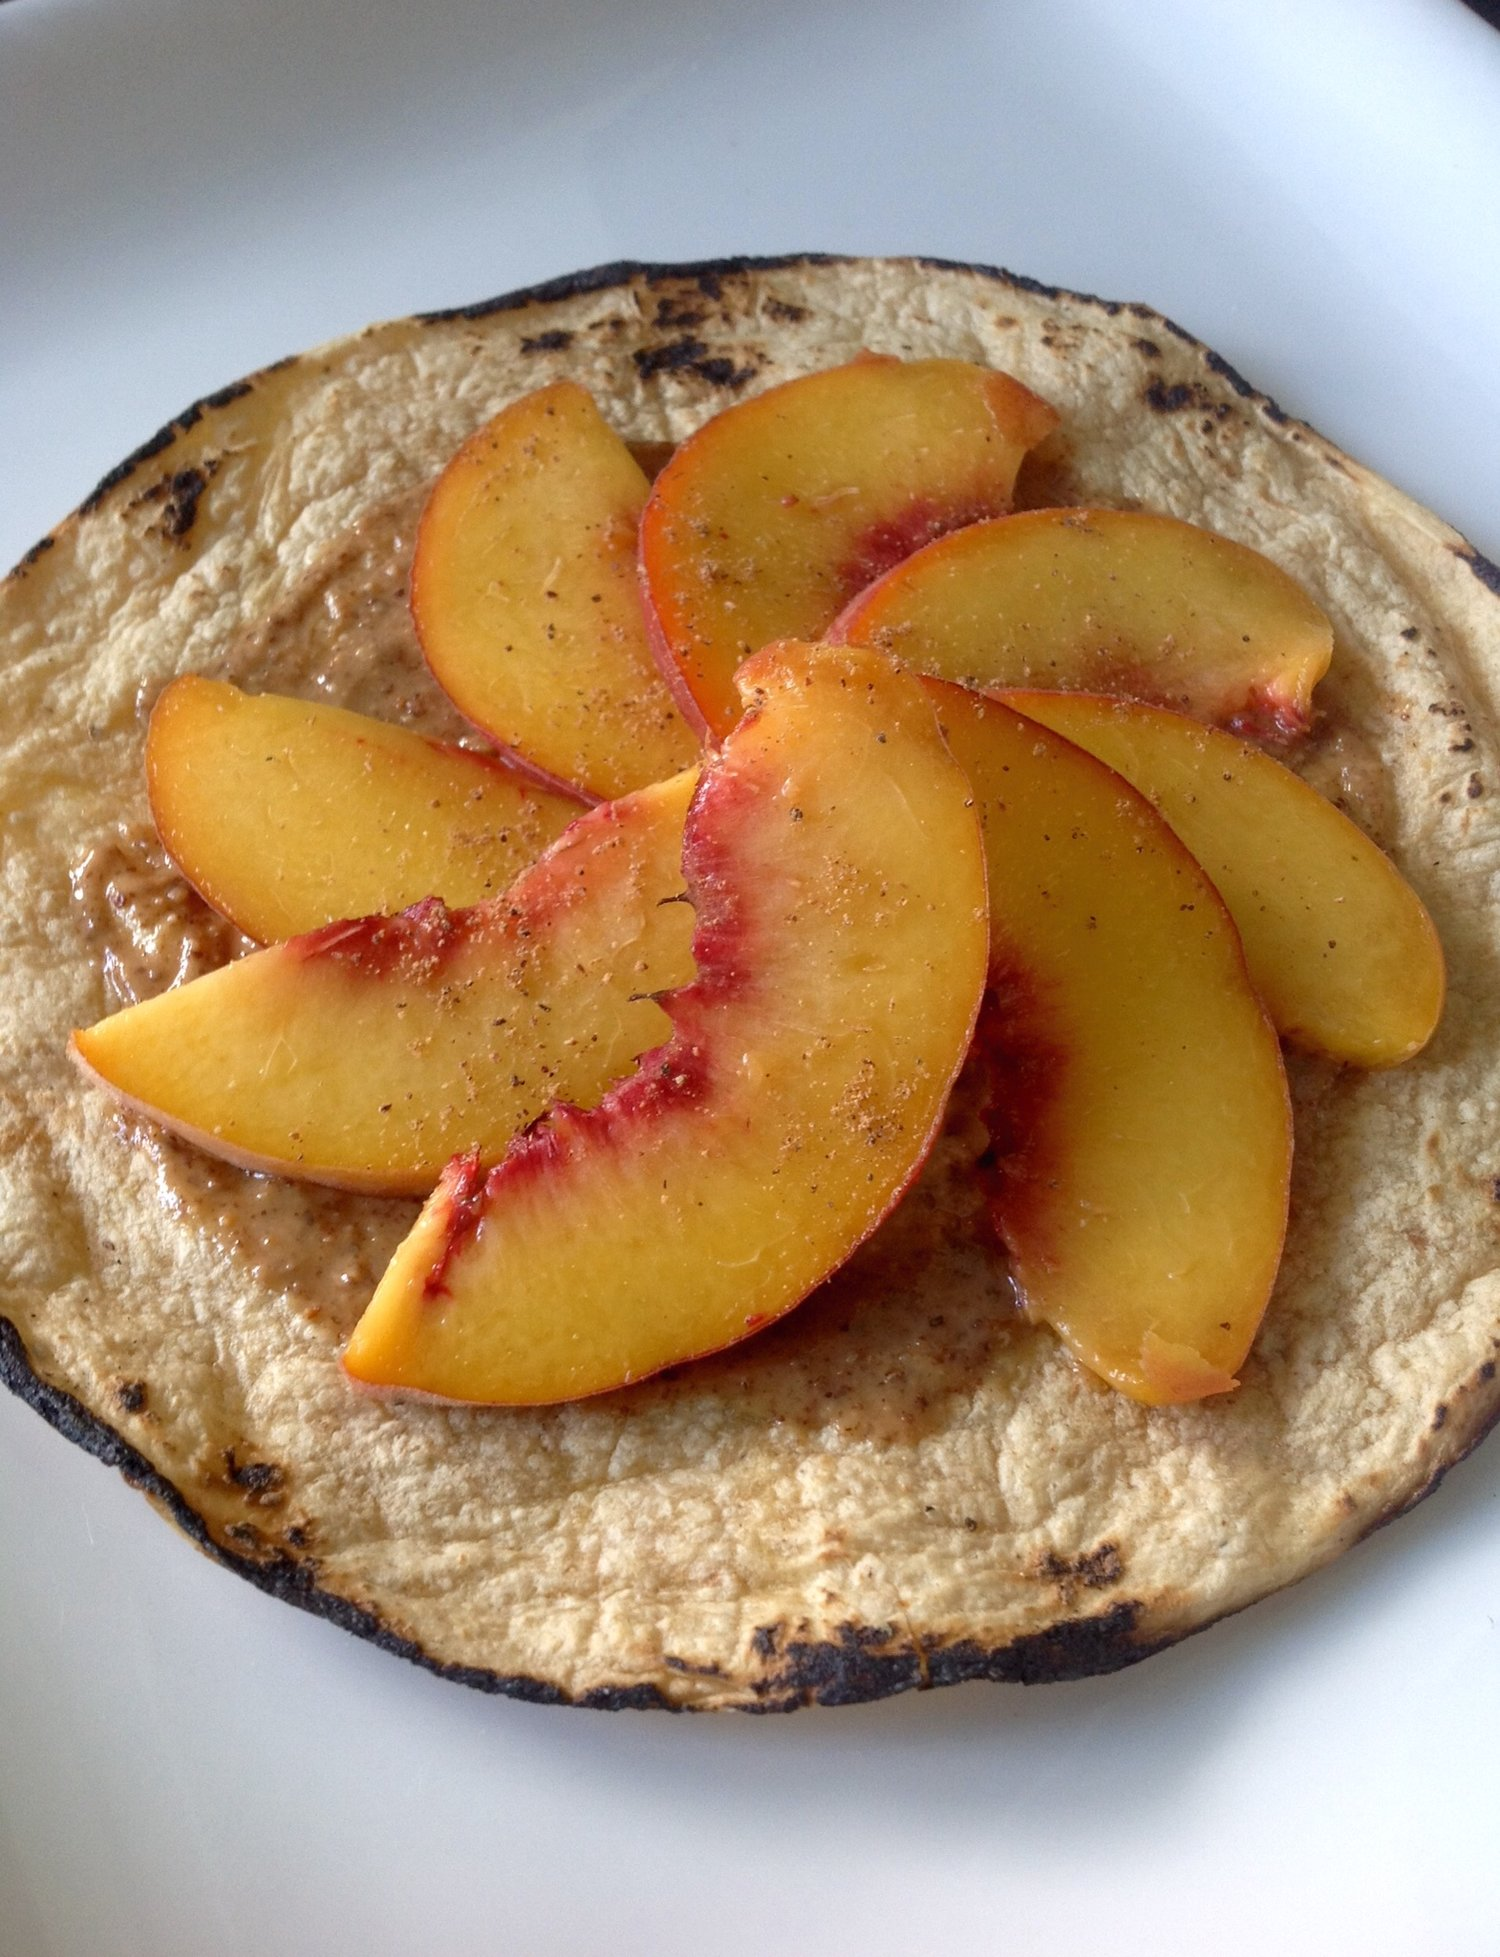 Tortilla with Almond Butter, Peaches, Nutmeg - Quick, Easy, Healthy Plant-Based, Oil-Free, Gluten-Free Vegan Snack